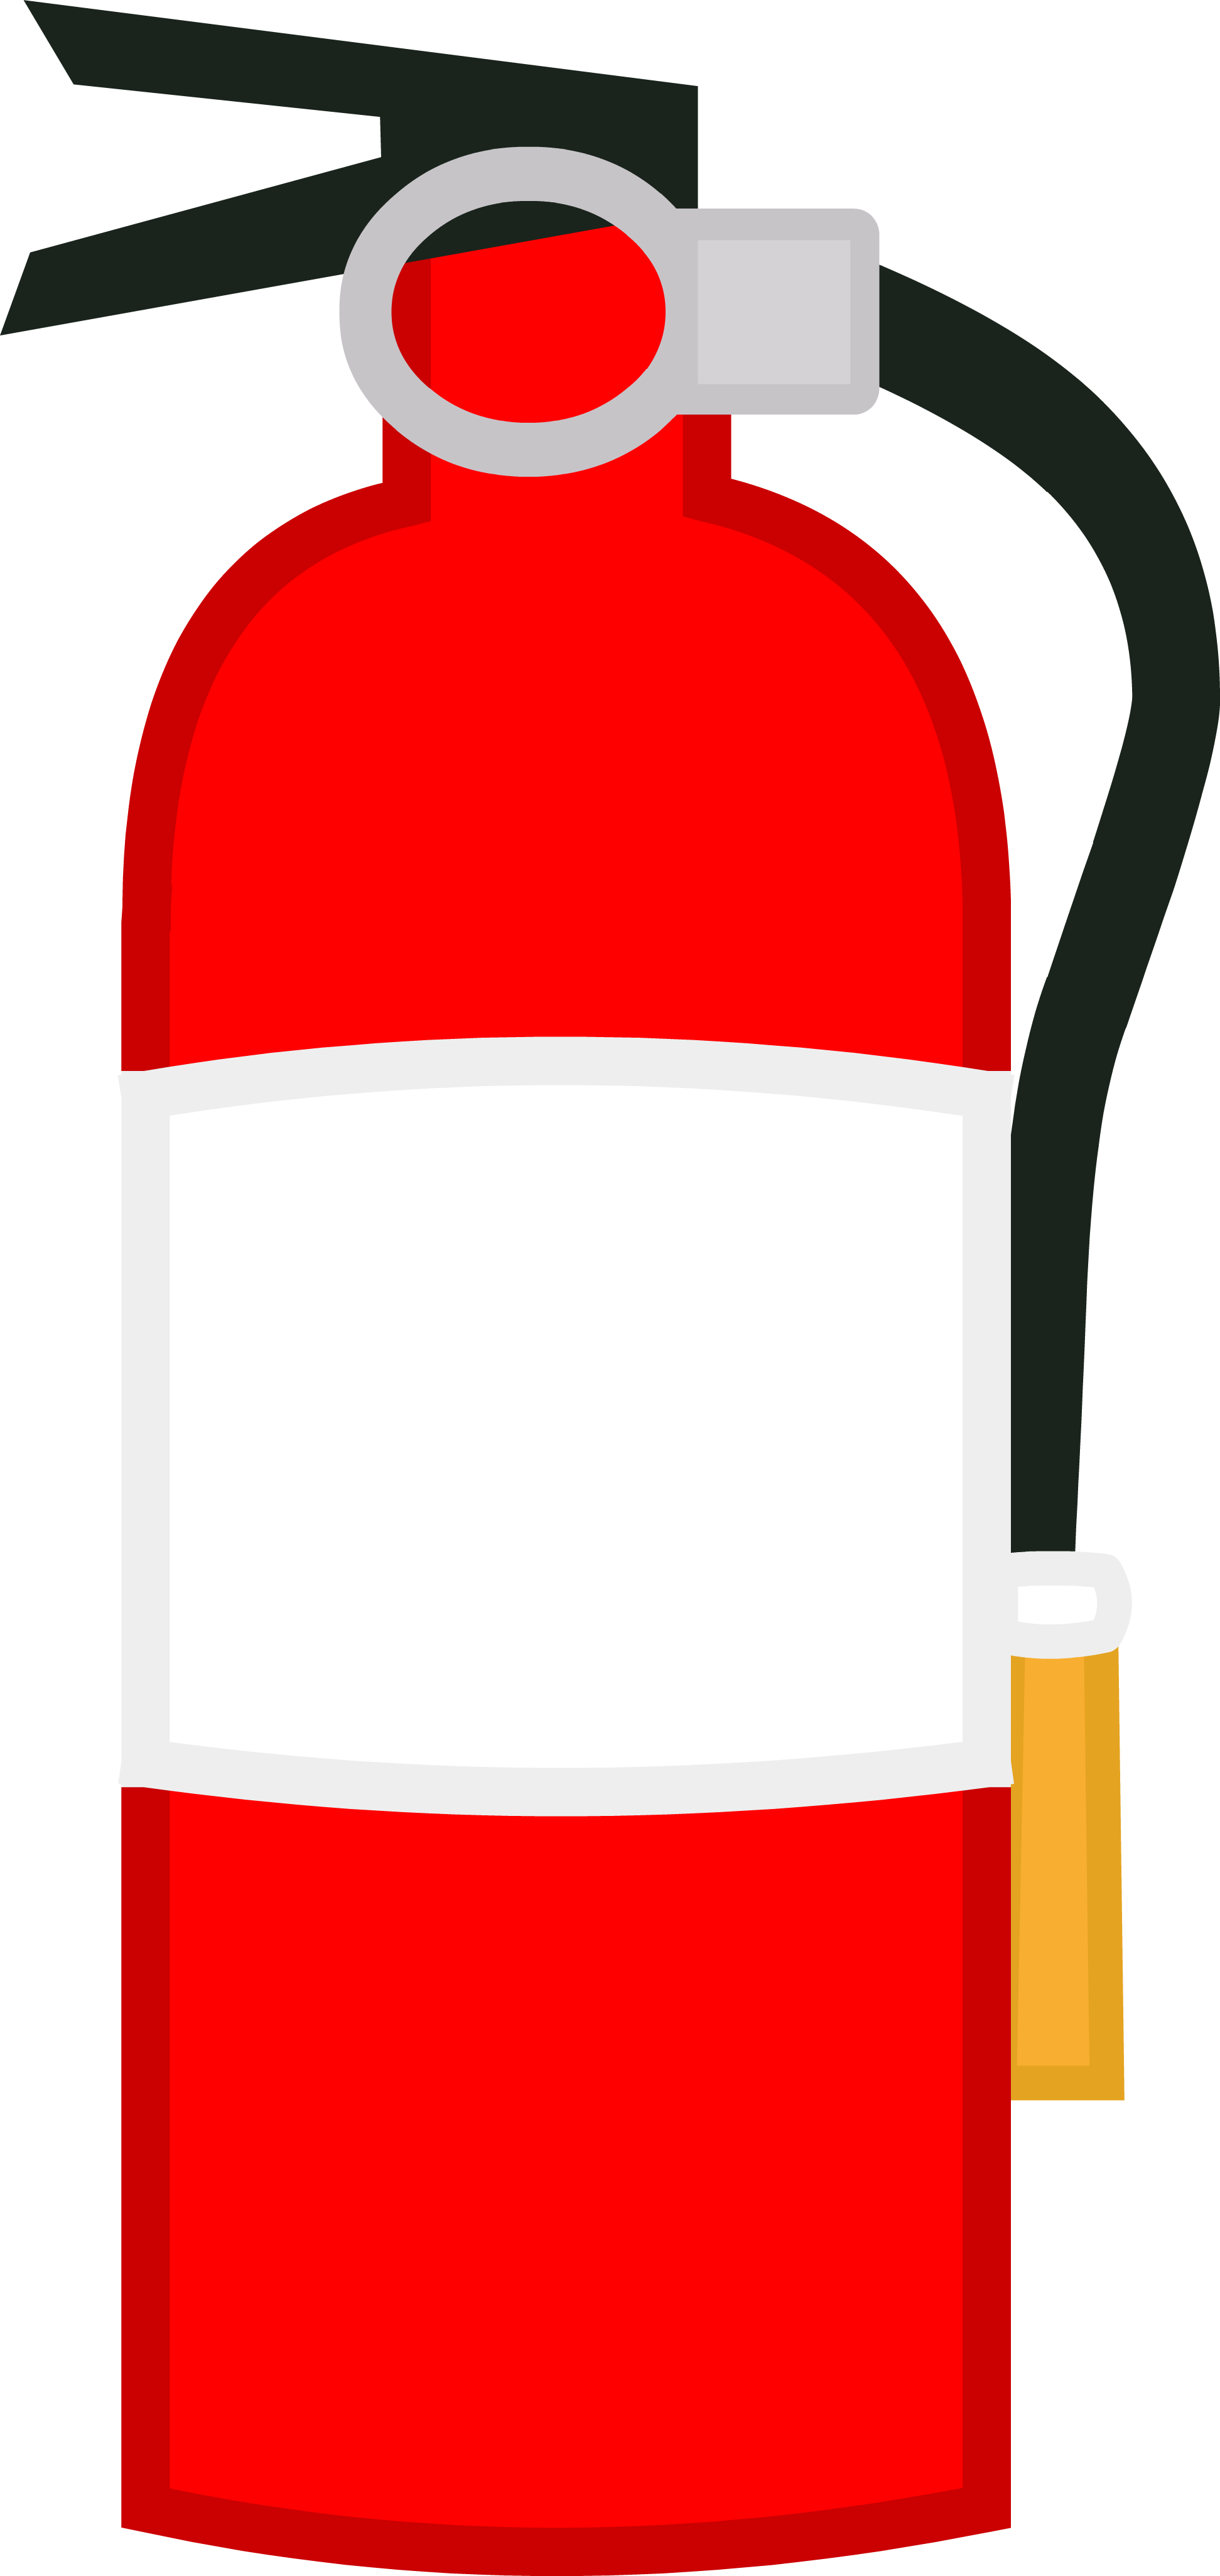 Television clipart plastic object. Image new extinguisher body